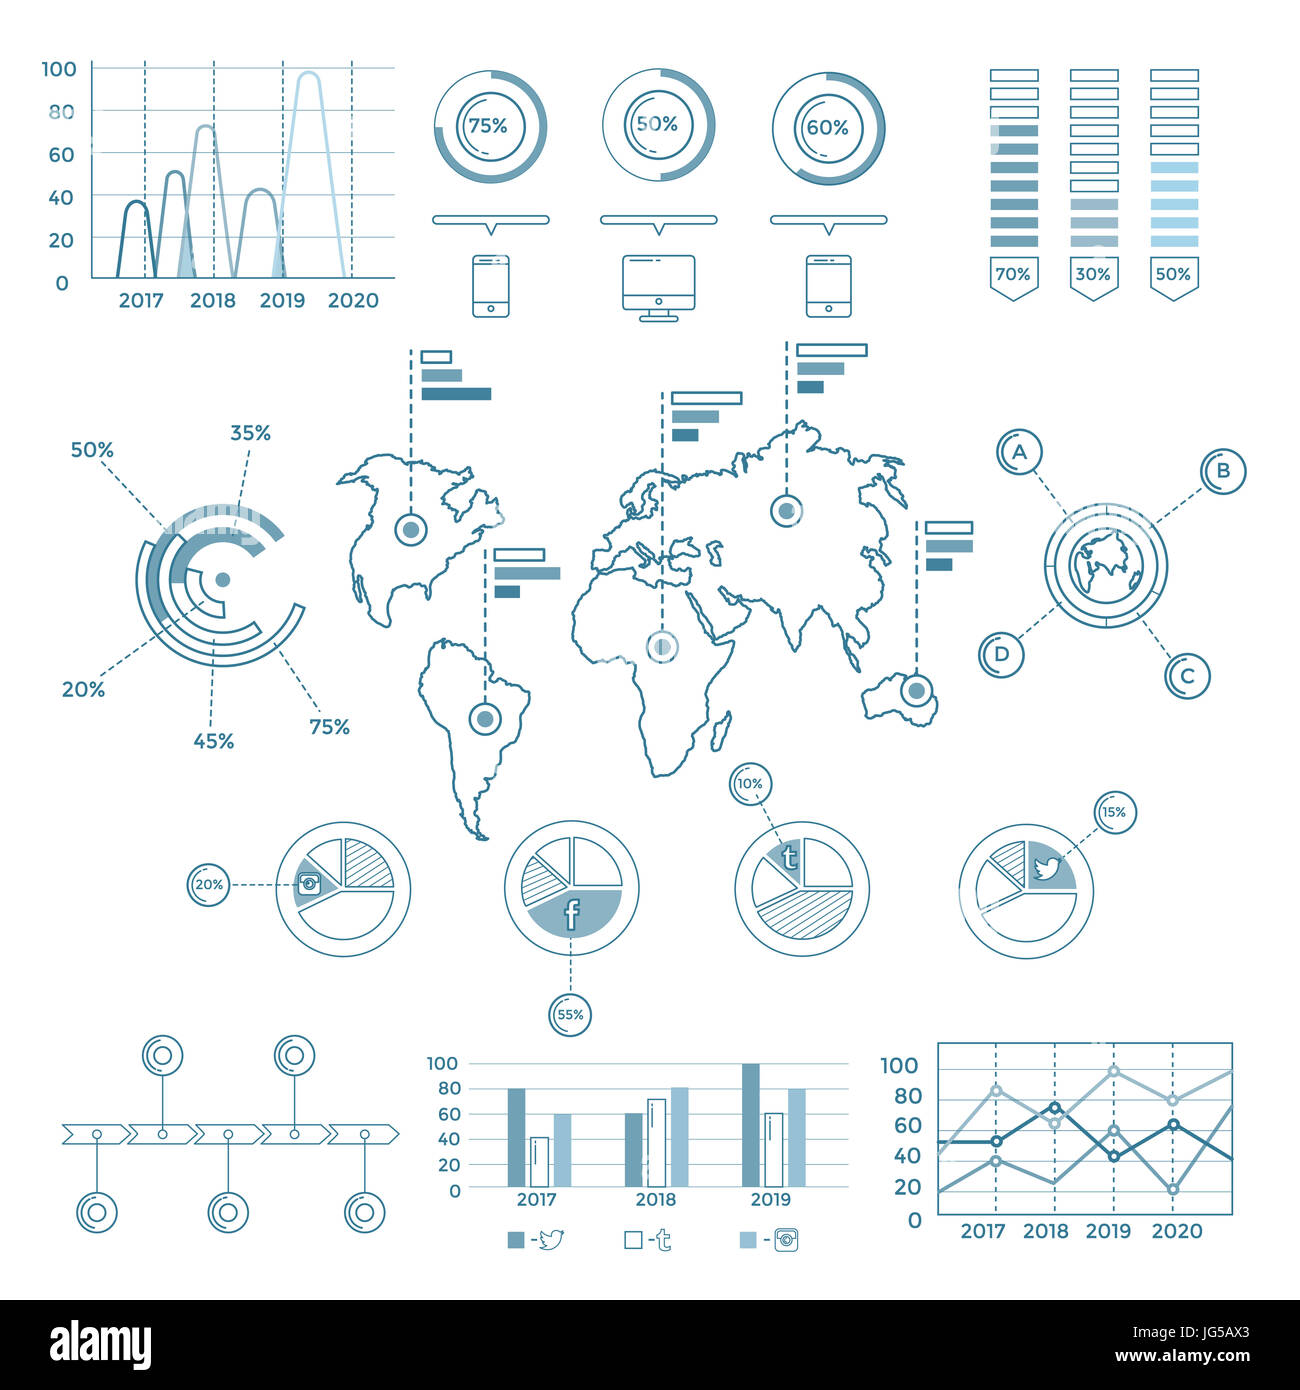 Social Media Blue Infographic Elements - Stock Image